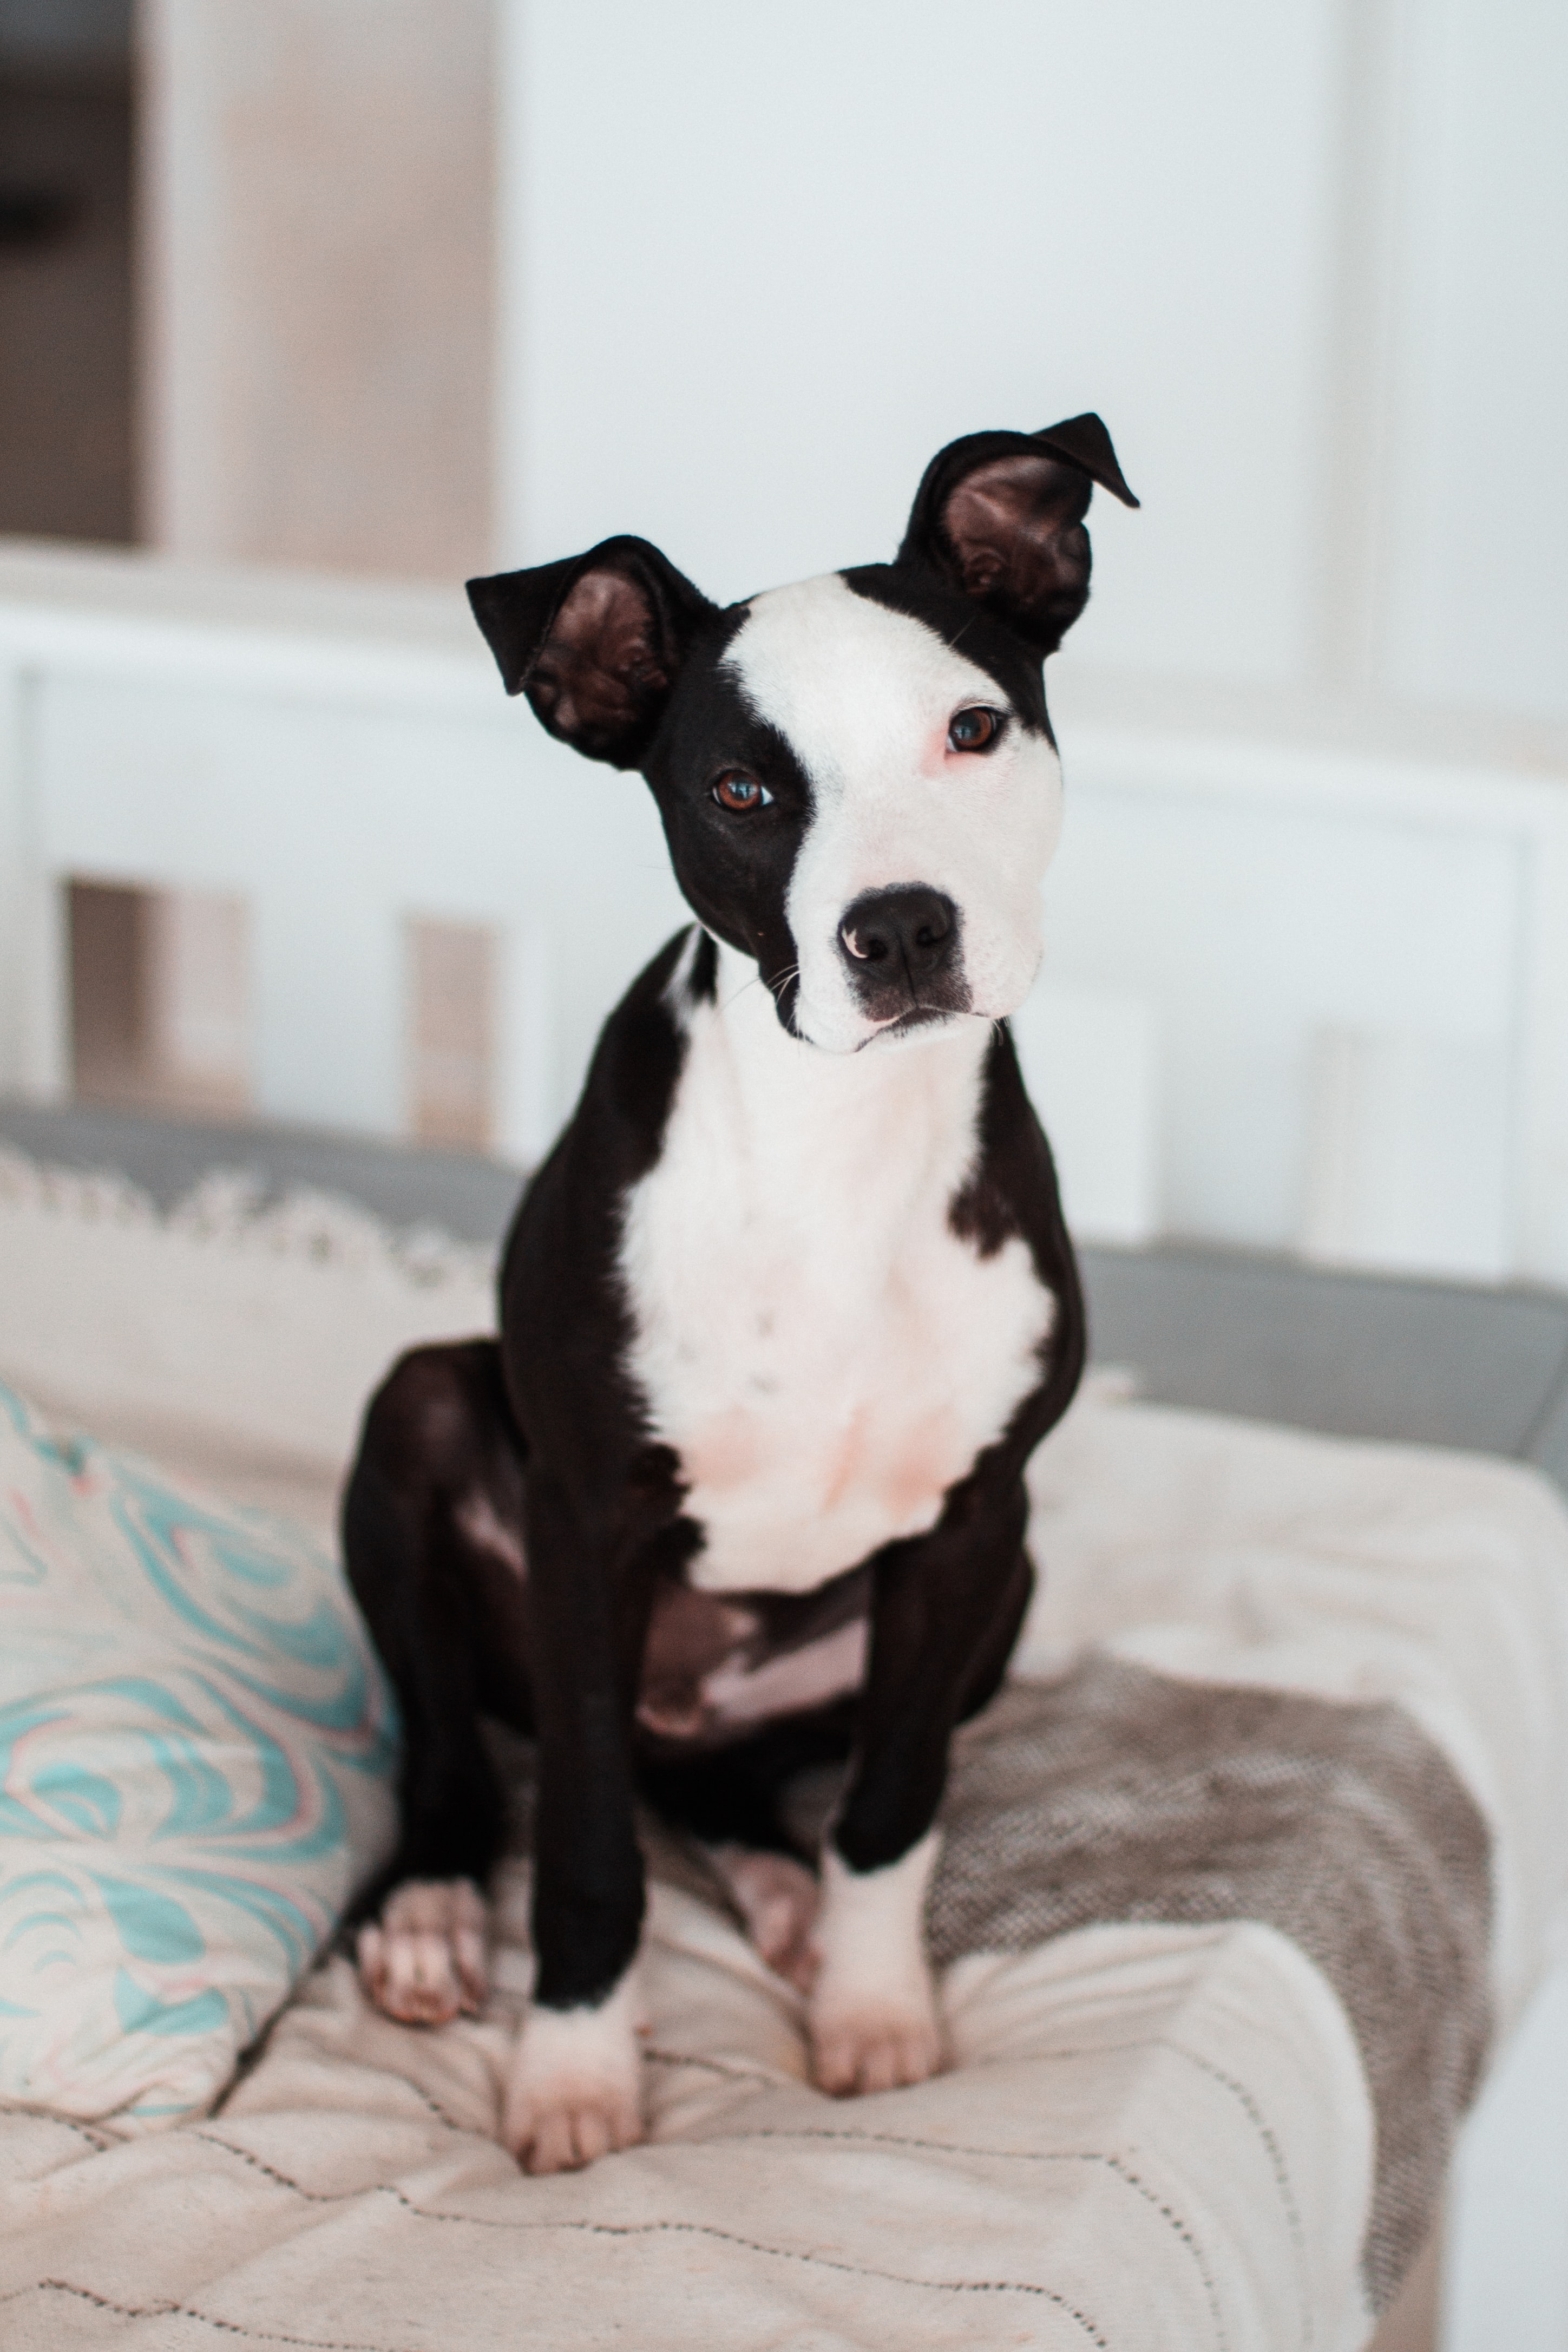 99075 download wallpaper Animals, American Terrier, Terrier, Puppy, Dog screensavers and pictures for free